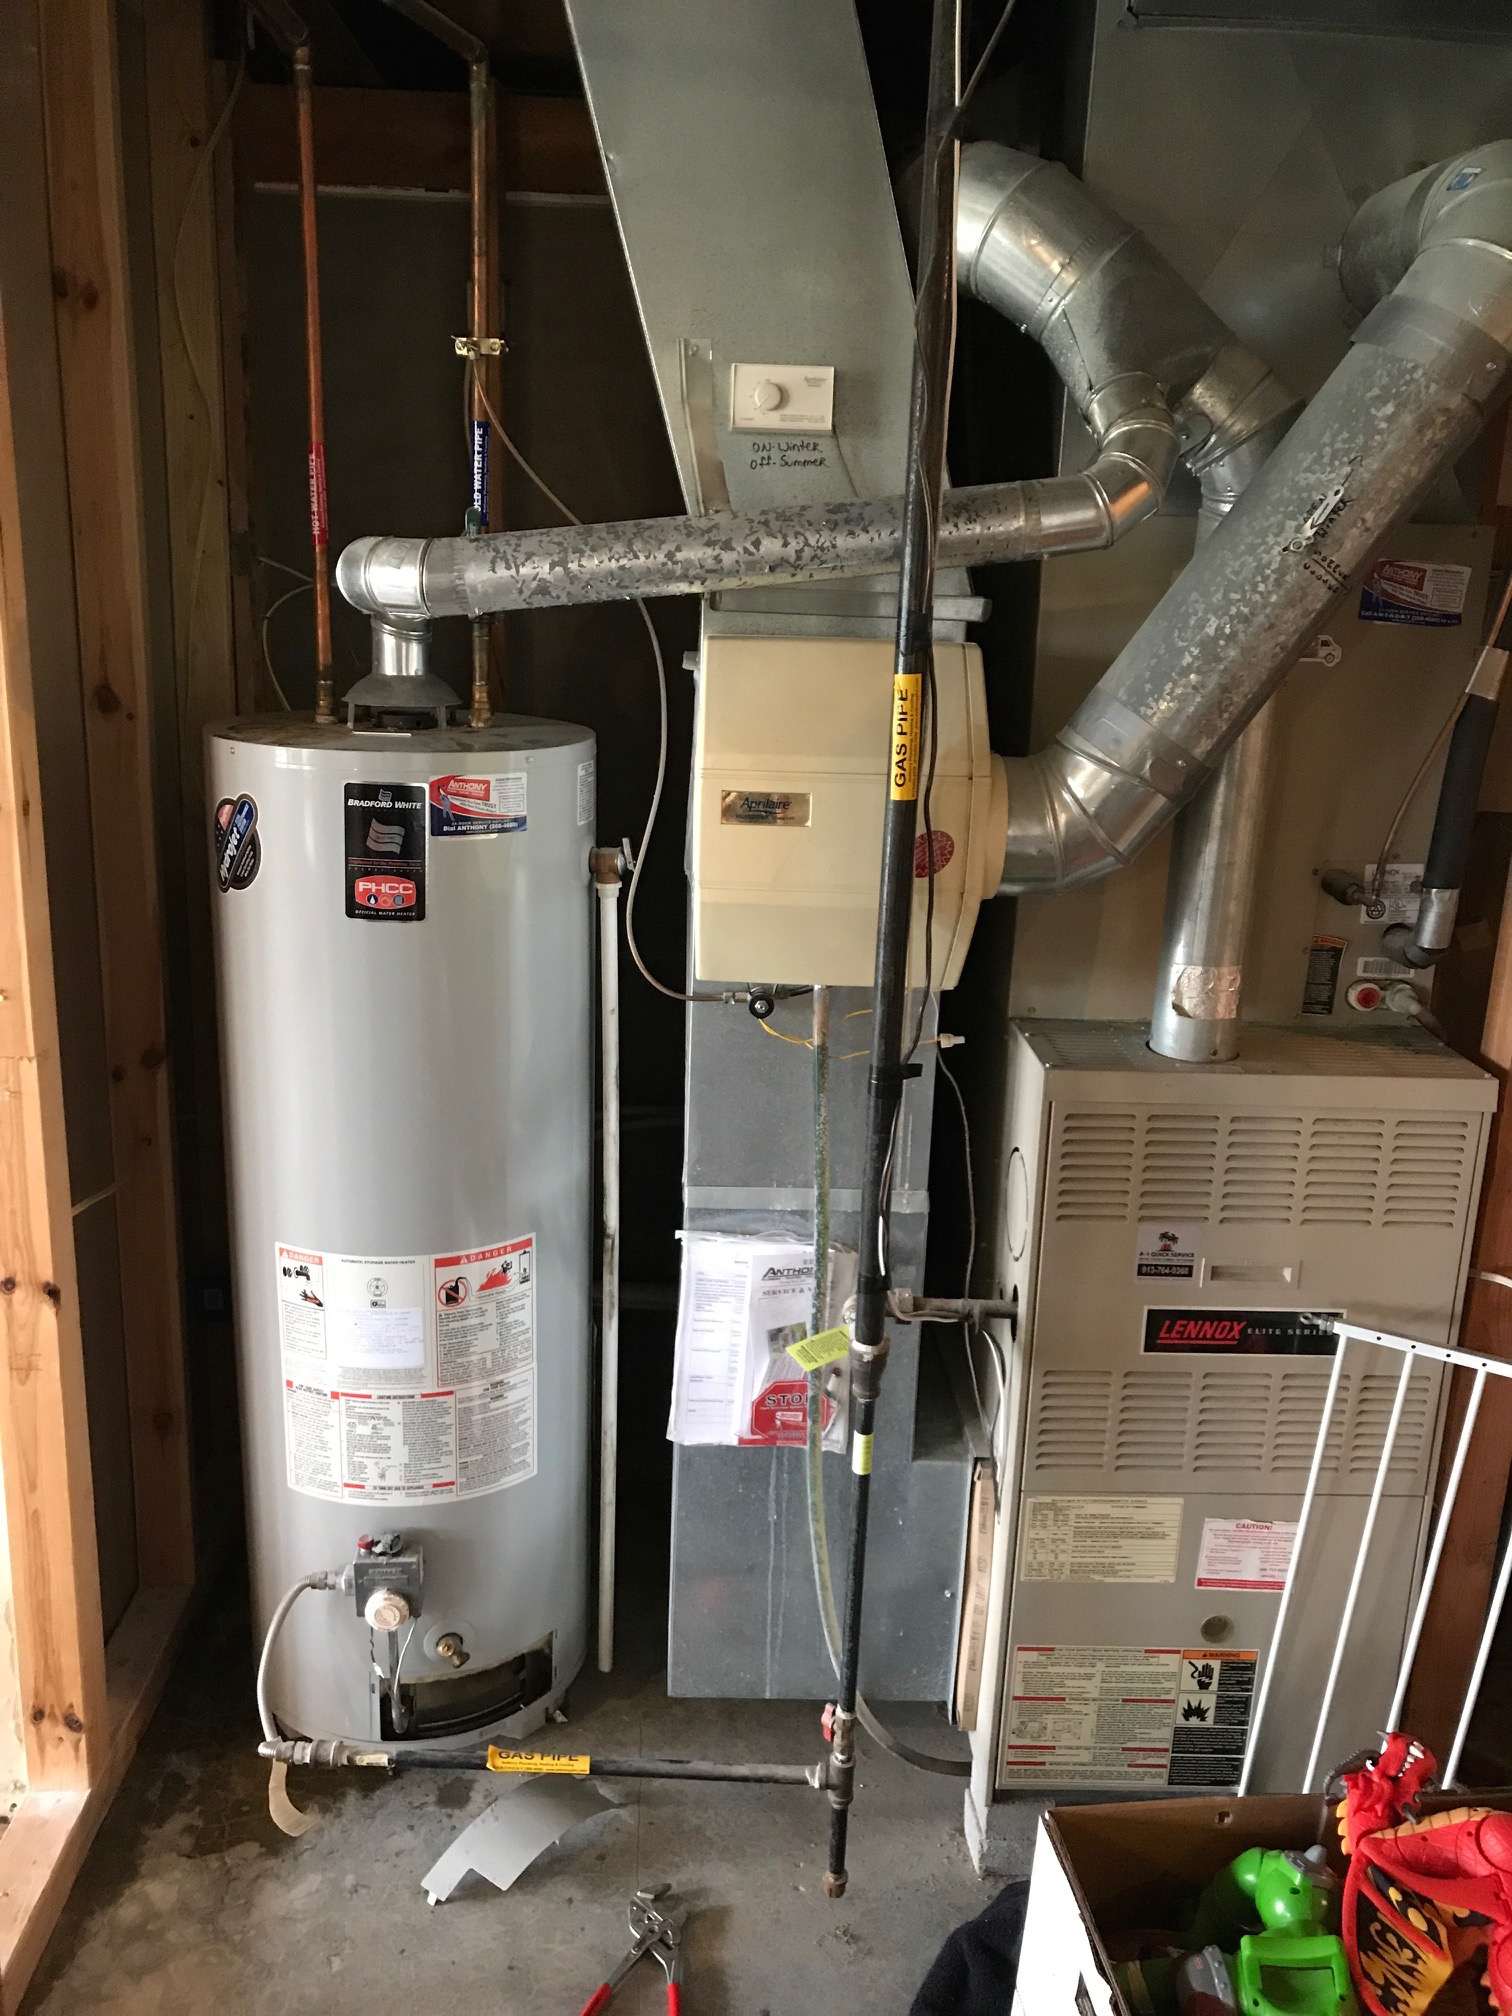 Water Heater Thermopile Voltage Low : water, heater, thermopile, voltage, Honeywell, Control, Valve, Troubleshooting, Water, Heaters